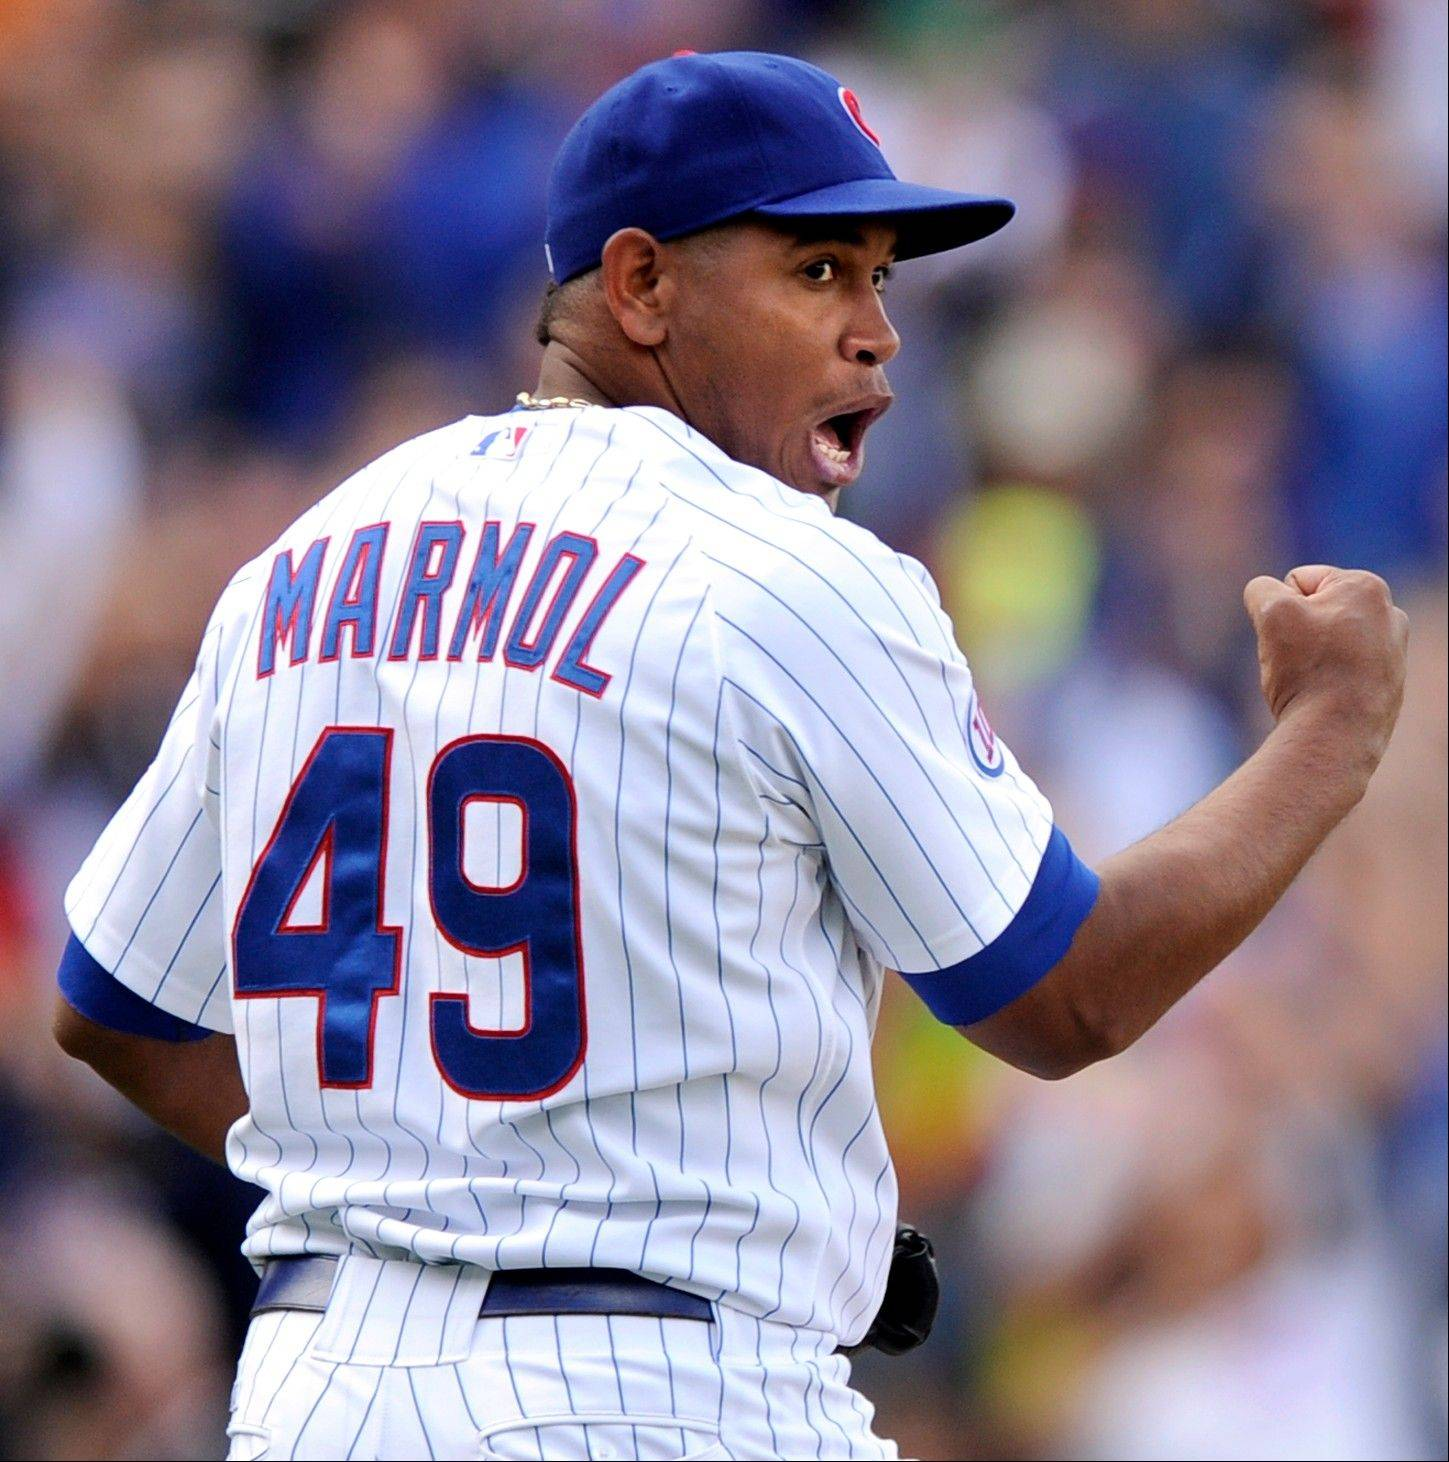 The cubs want closer Carlos Marmol, who saved 34 games last season but blew 10 other save opportunities, to rely on his devastating slider in 2012.